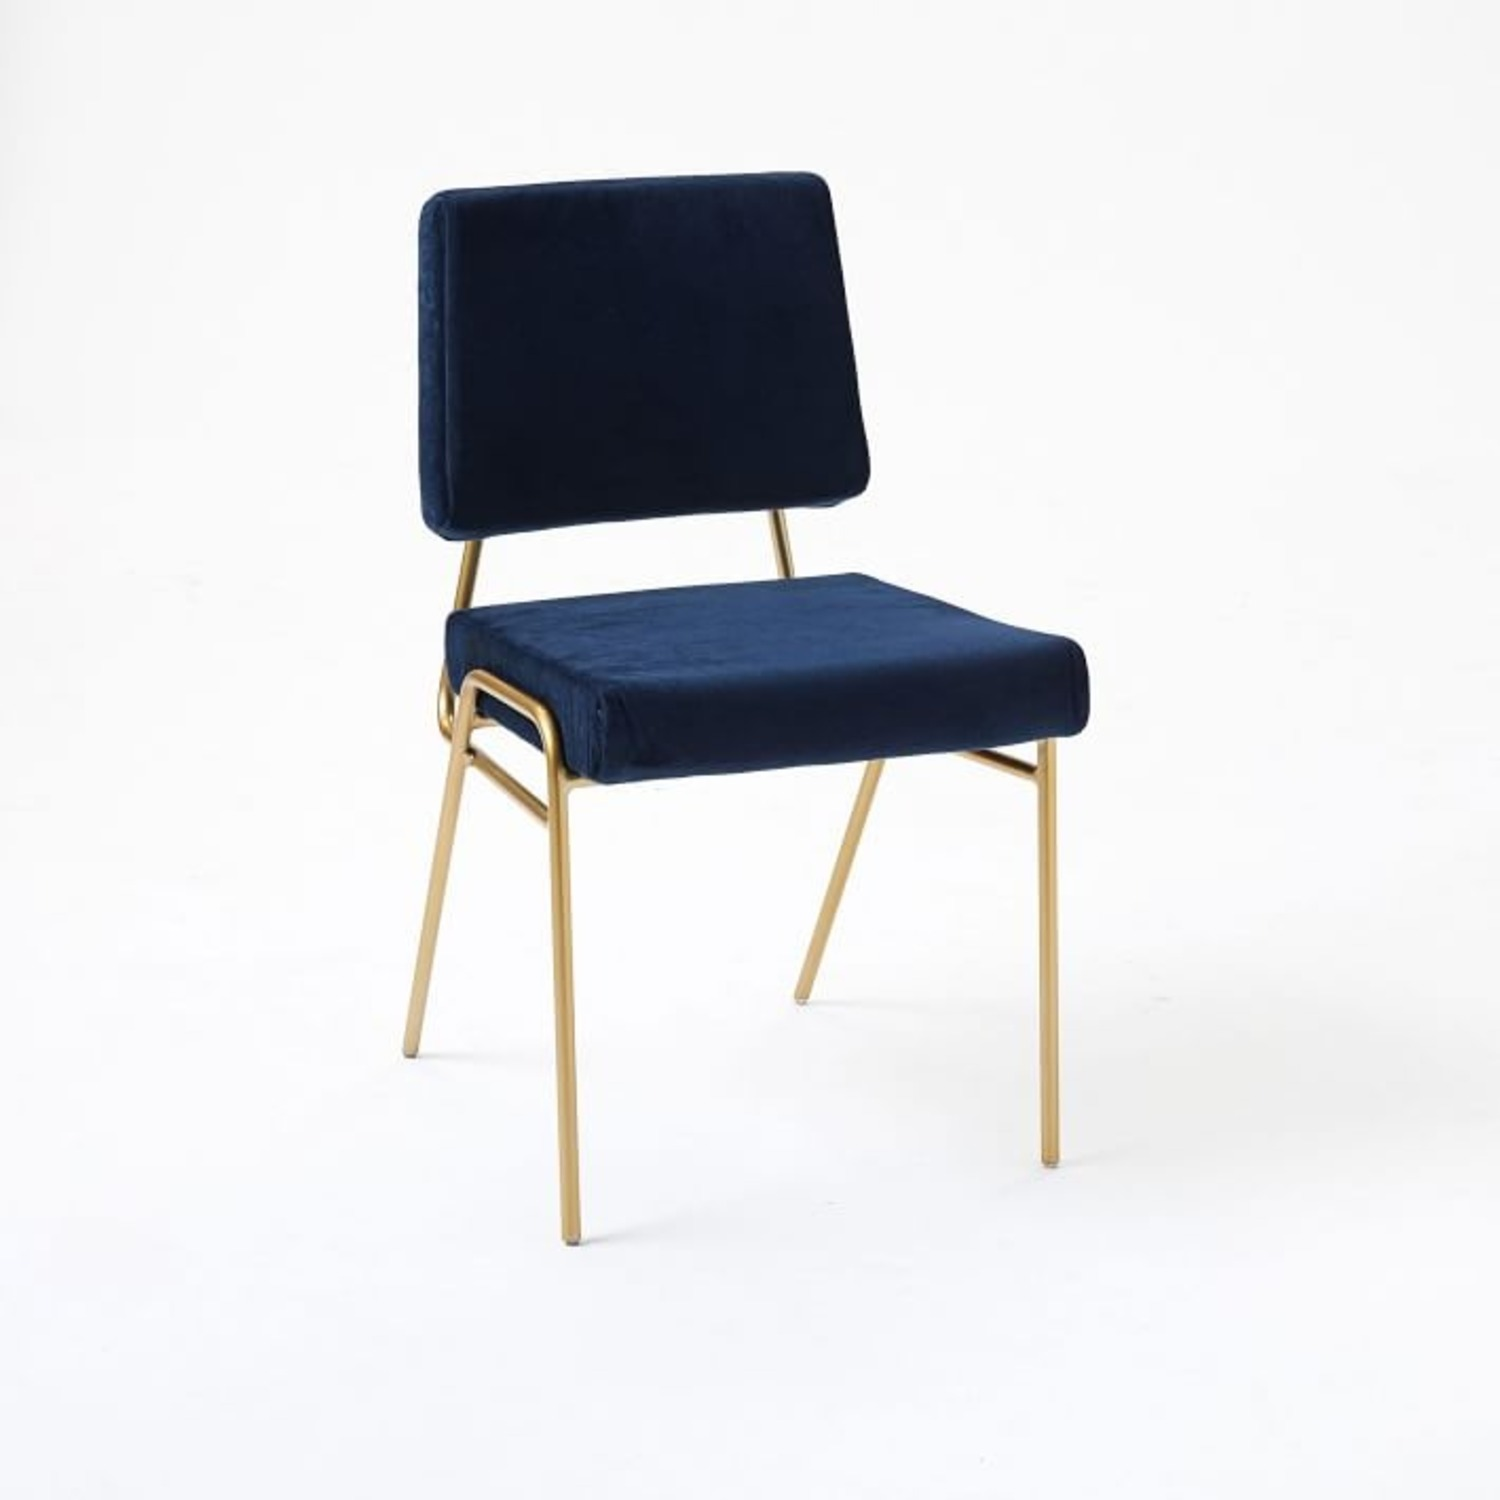 West Elm Wire Frame Upholstered Dining Chair - image-1